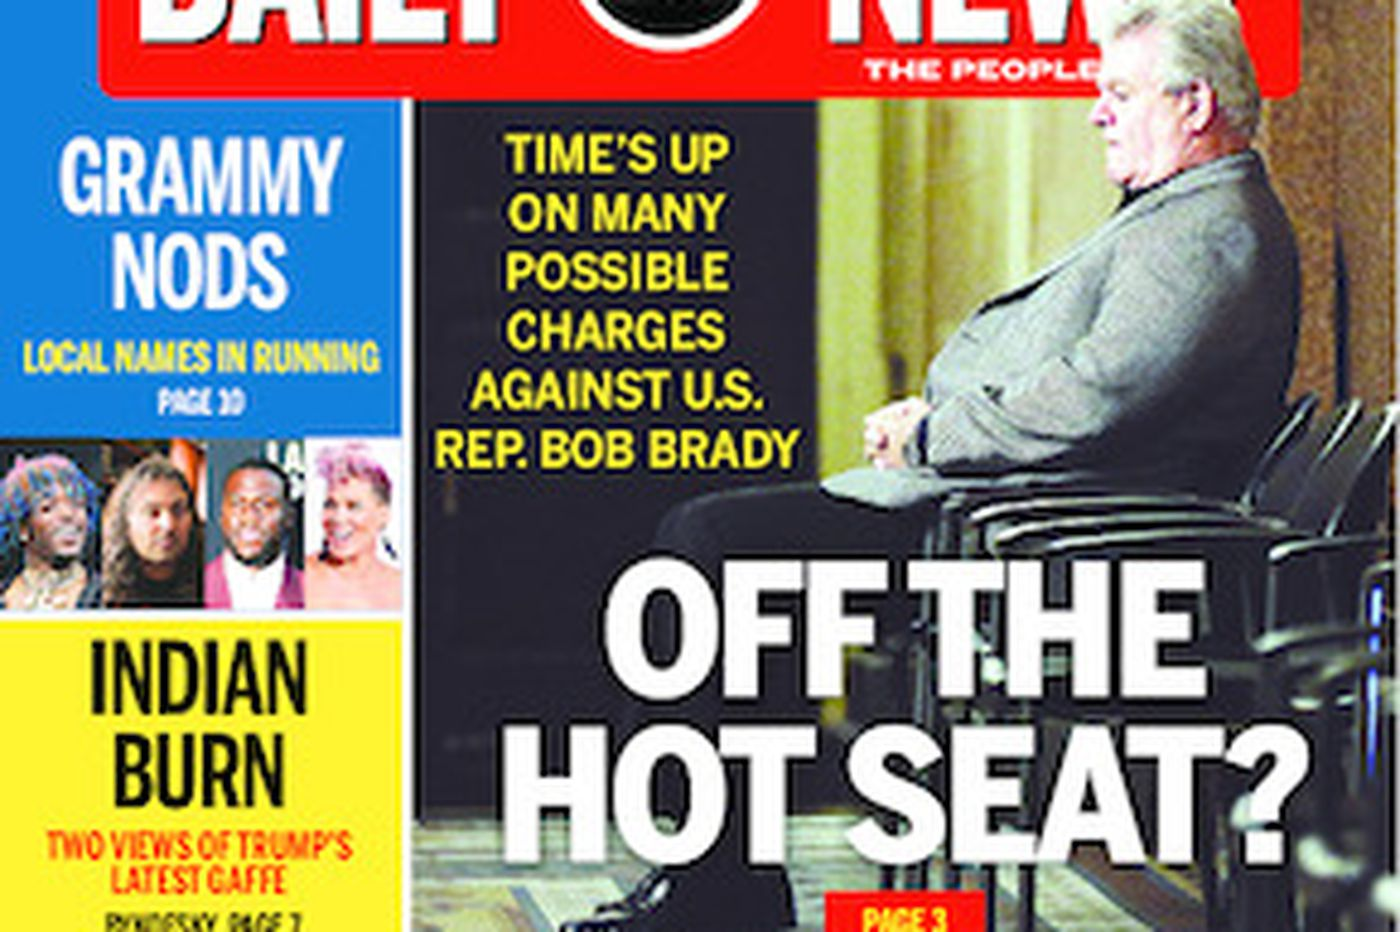 Dailynews Monthly Covers 11/29/17